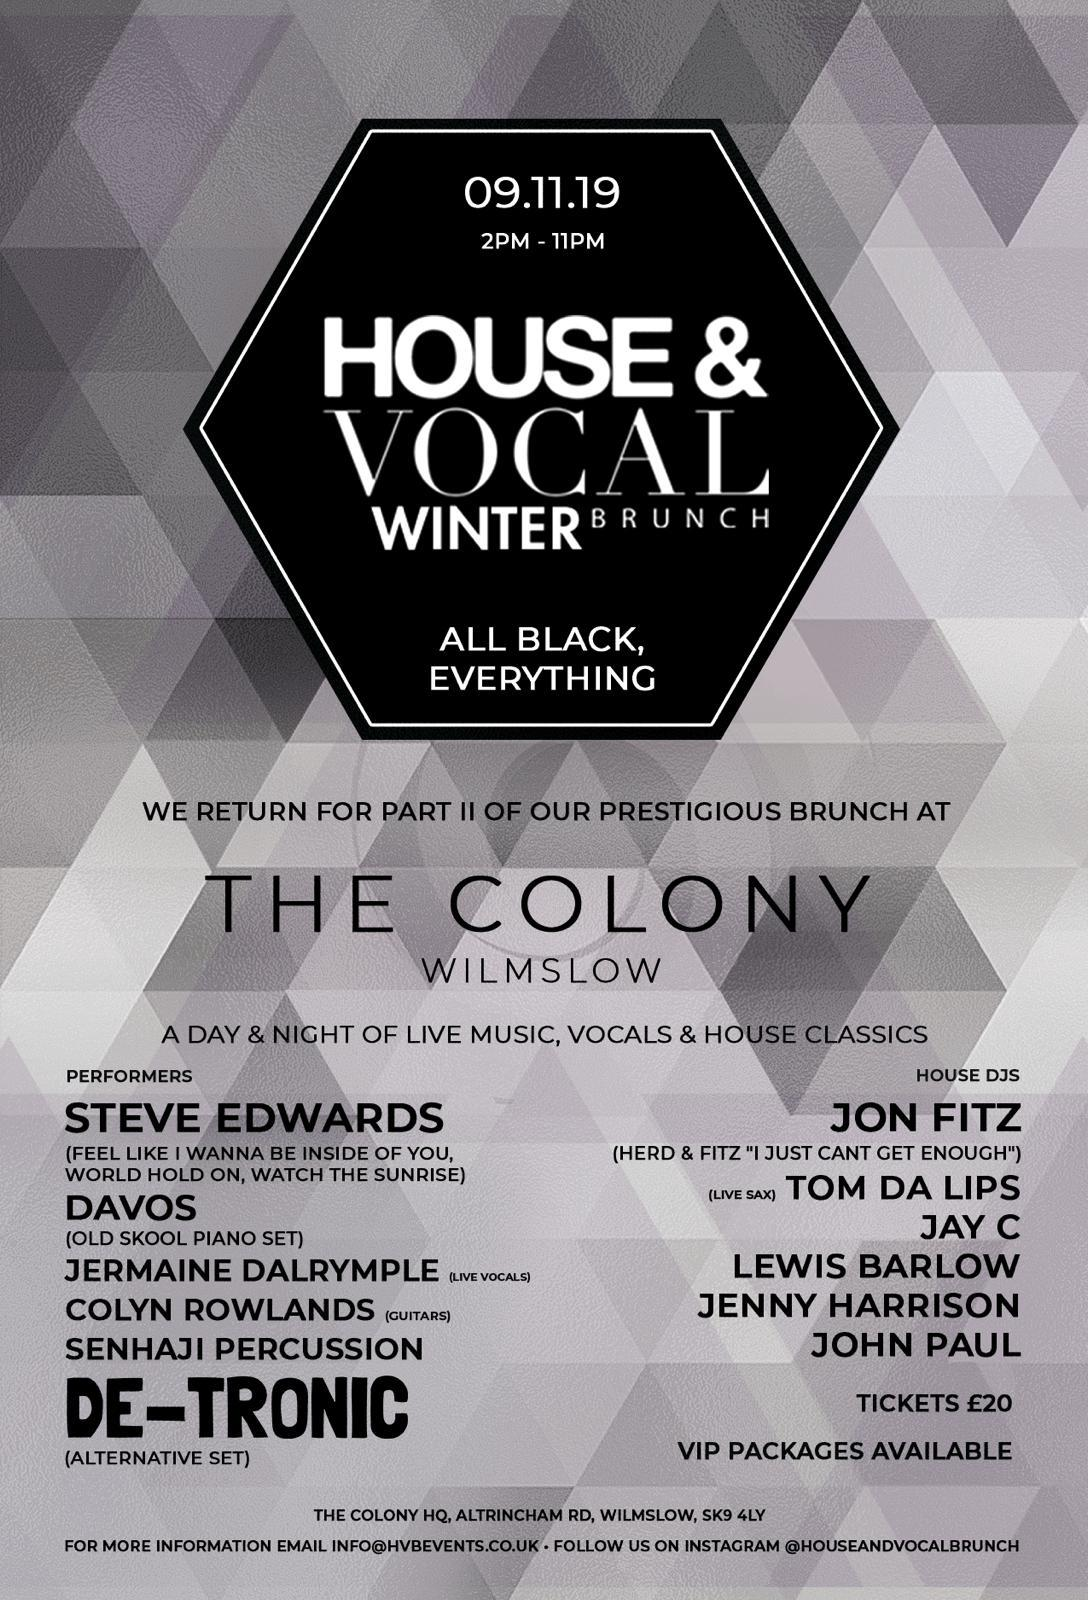 House & Vocal Winter Brunch at Colony HQ